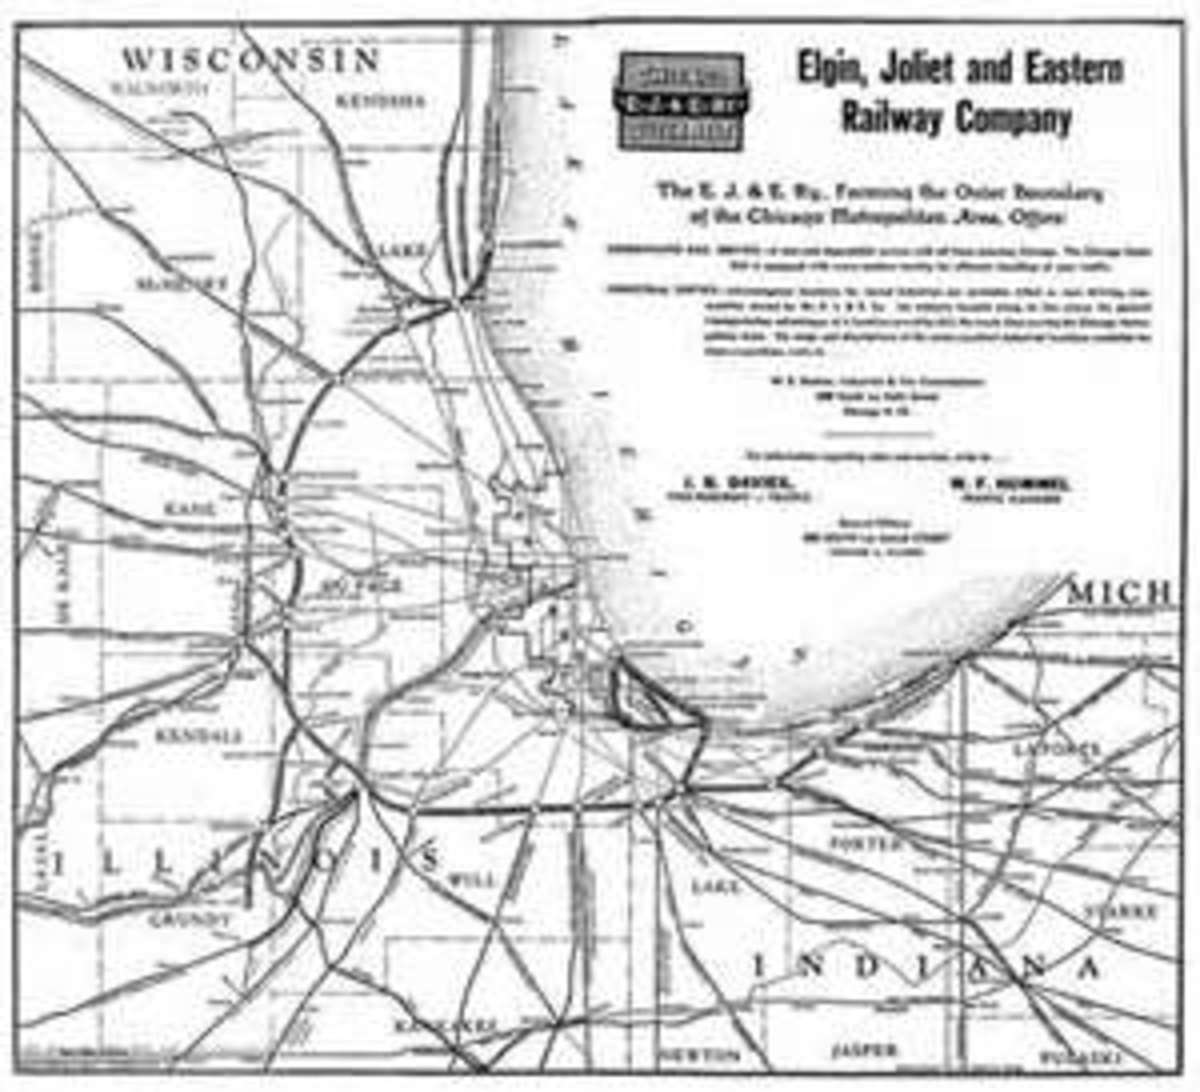 EJ&E Chicago area Connections